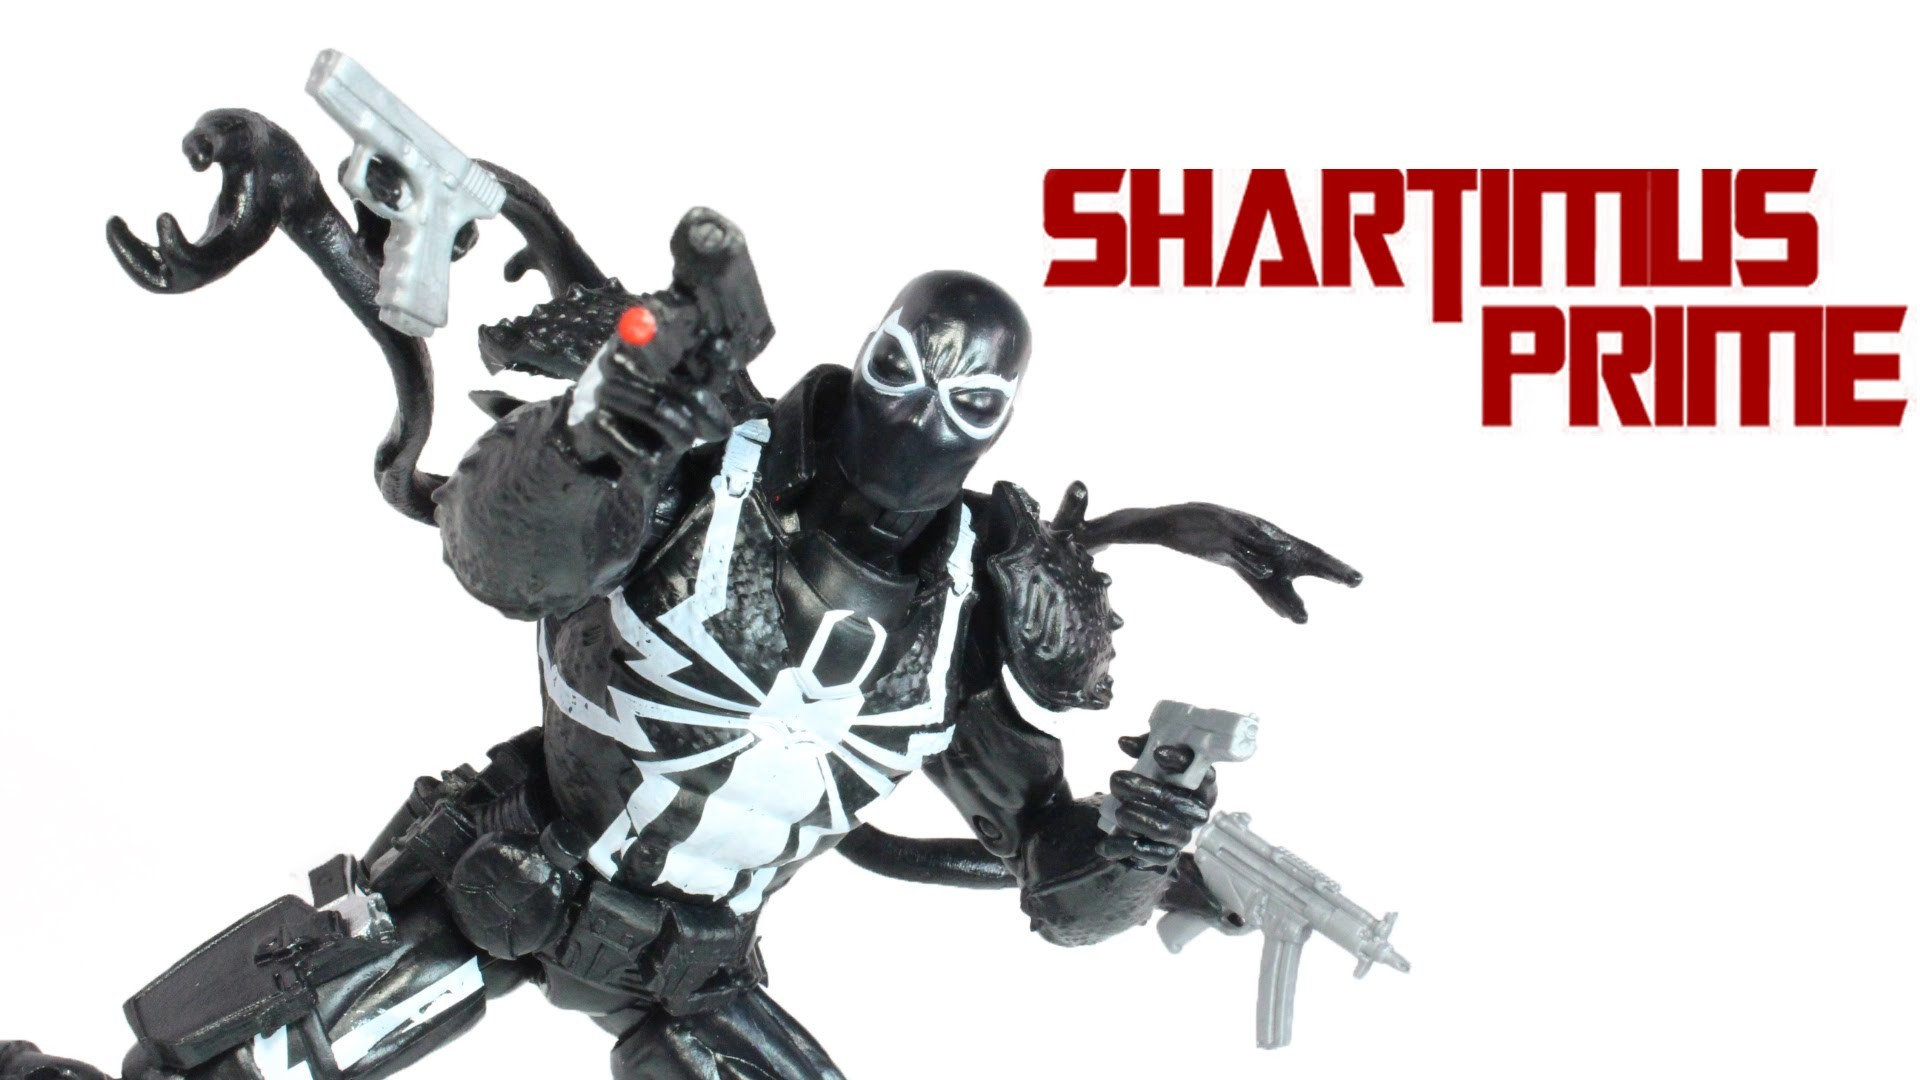 Marvel Legends Agent Venom Walgreens Exclusive Toy Amazing Spider Man 2  Wave Action Figure Review – YouTube